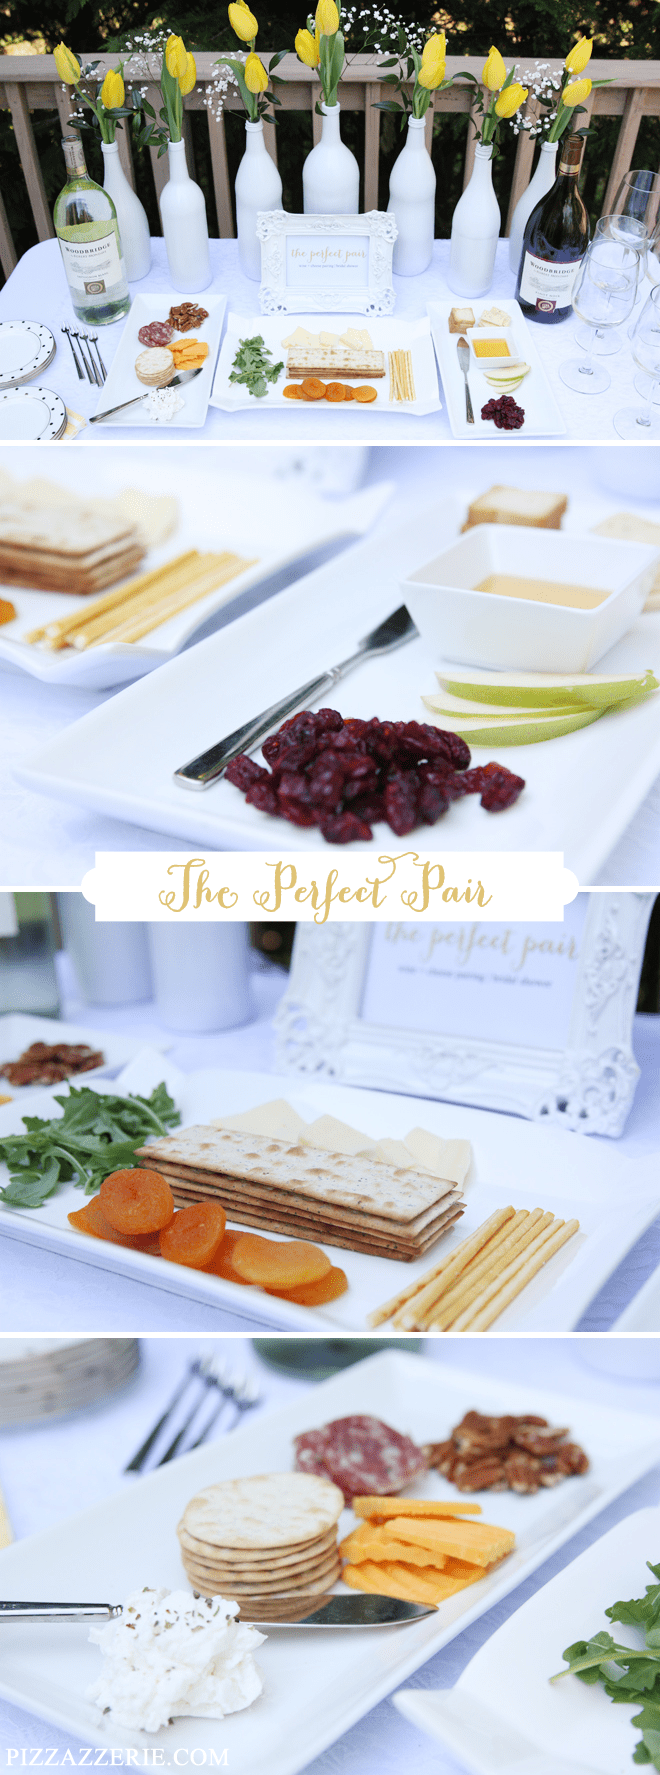 "Bridal Shower - Wine + Cheese Pairing for ""The Perfect Pair"""